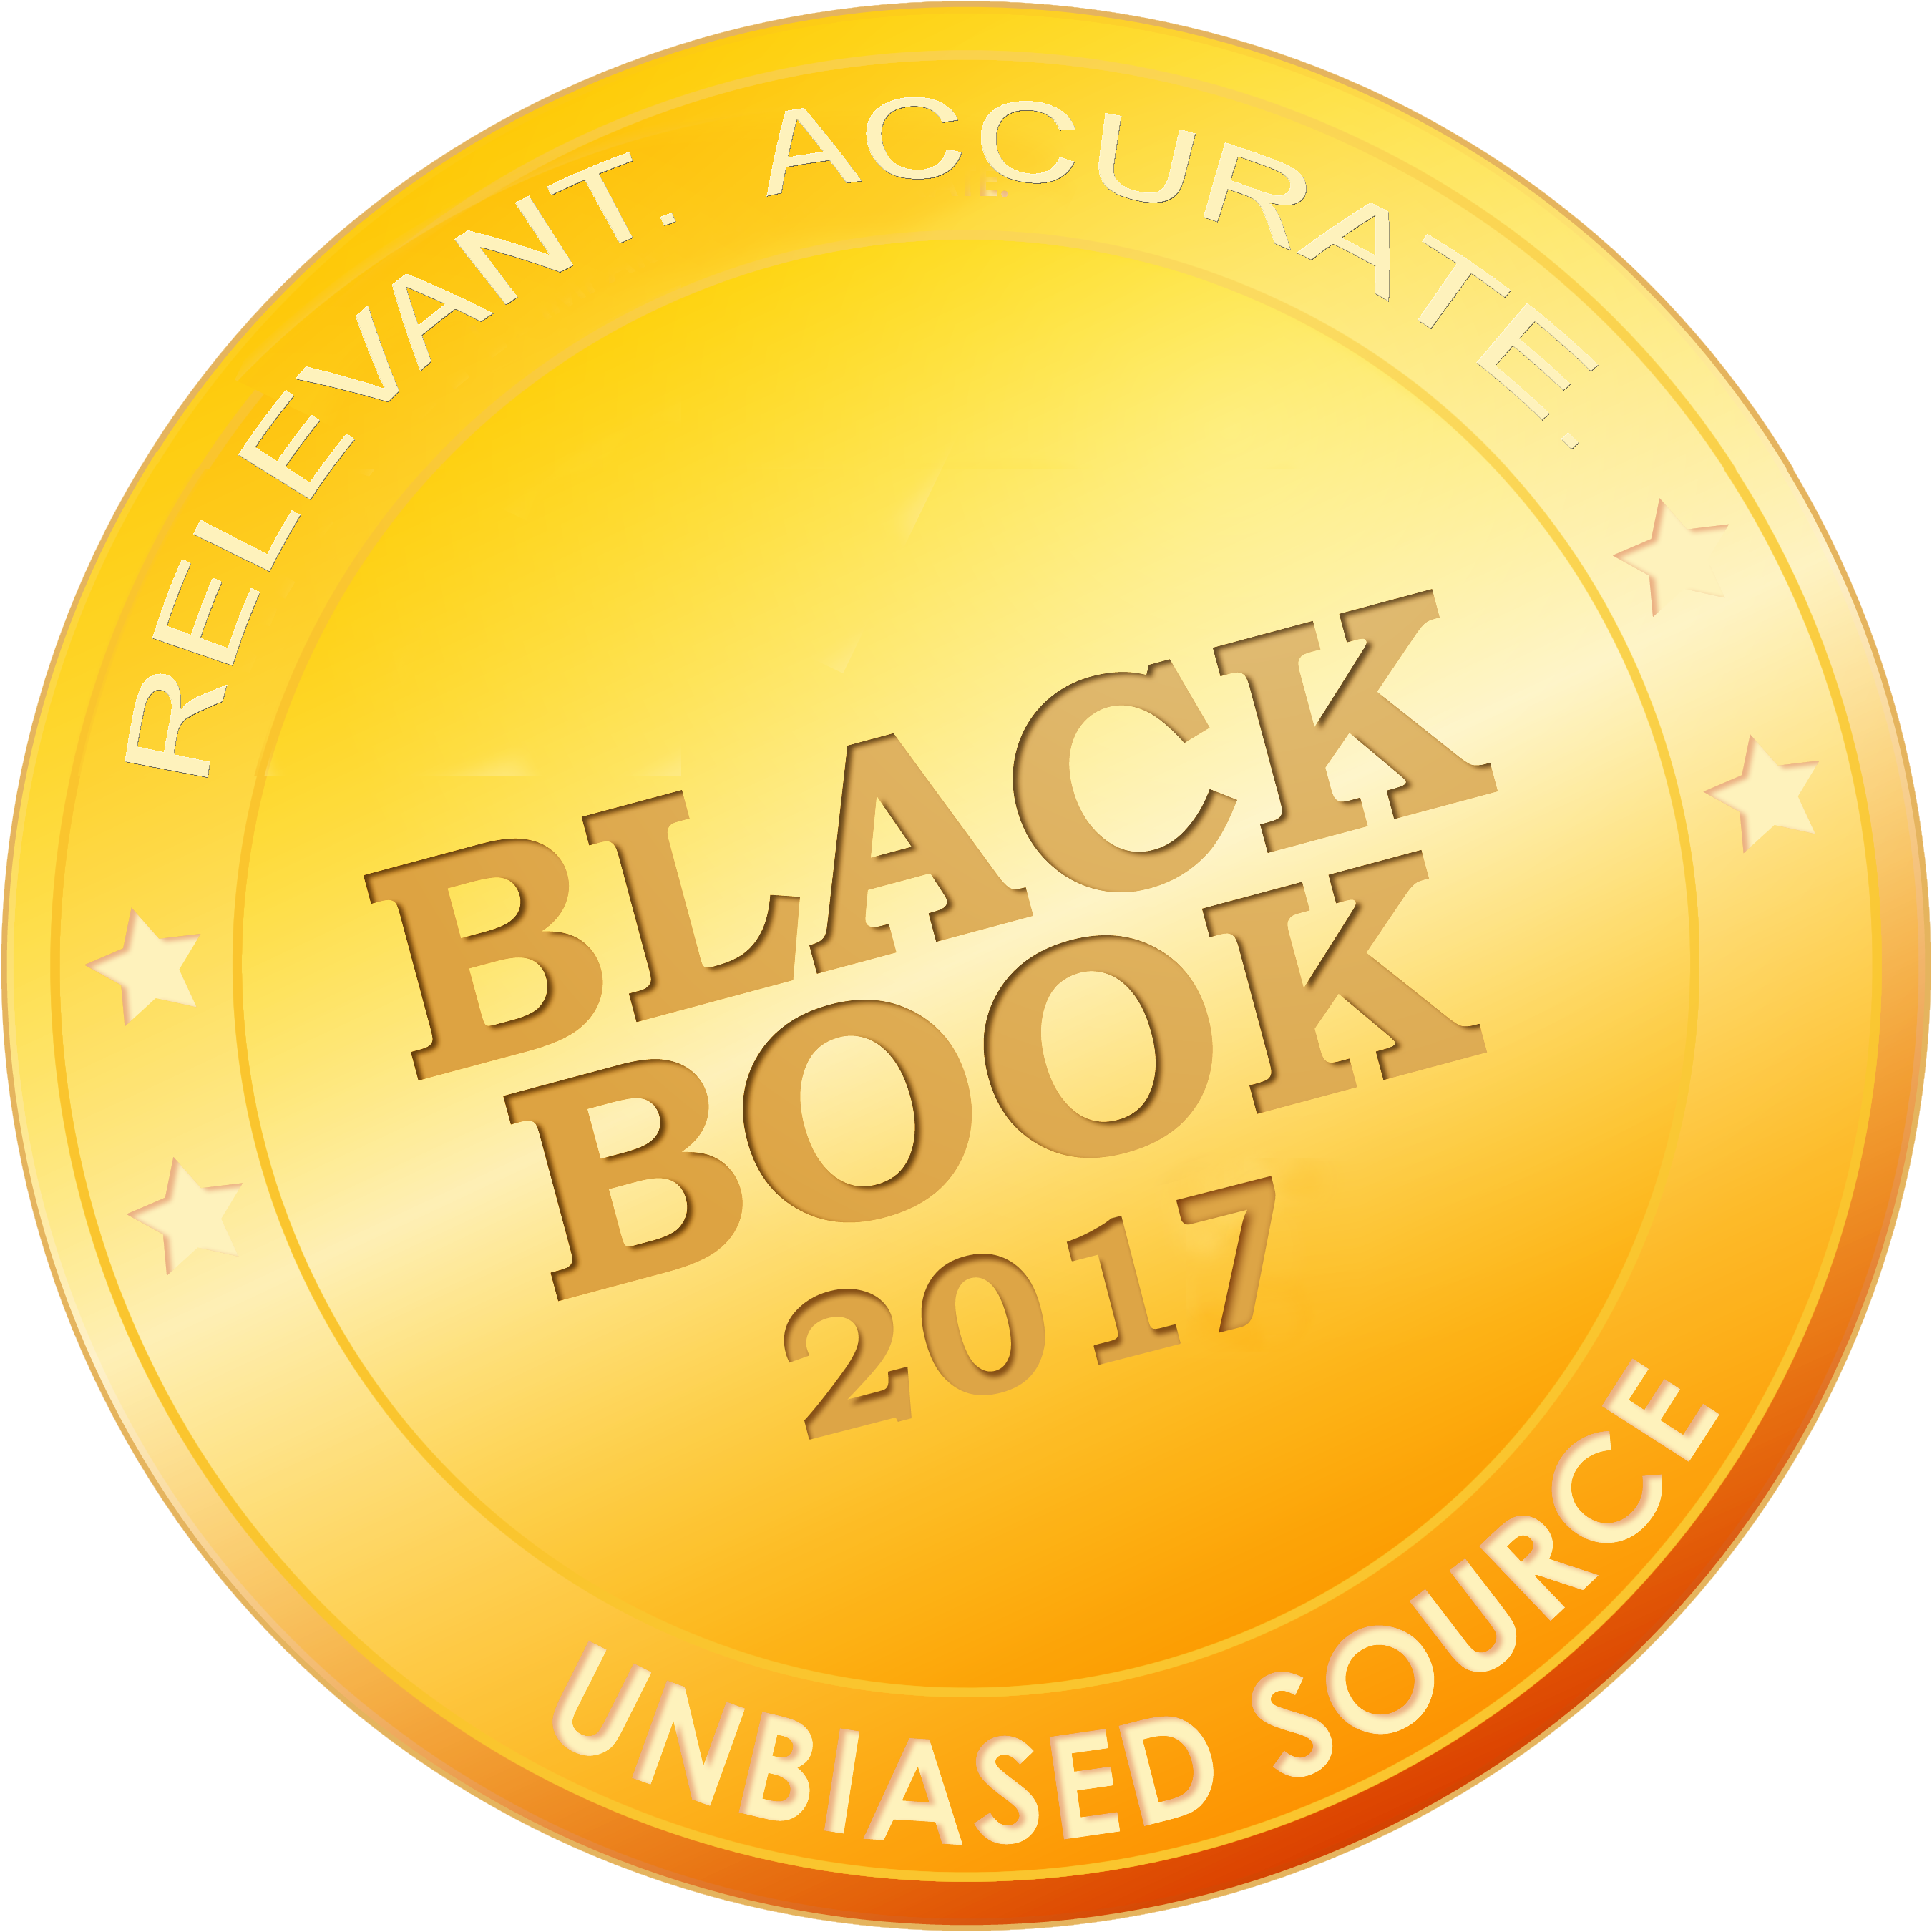 2017 Black Book Technical Support Vendors: EHR